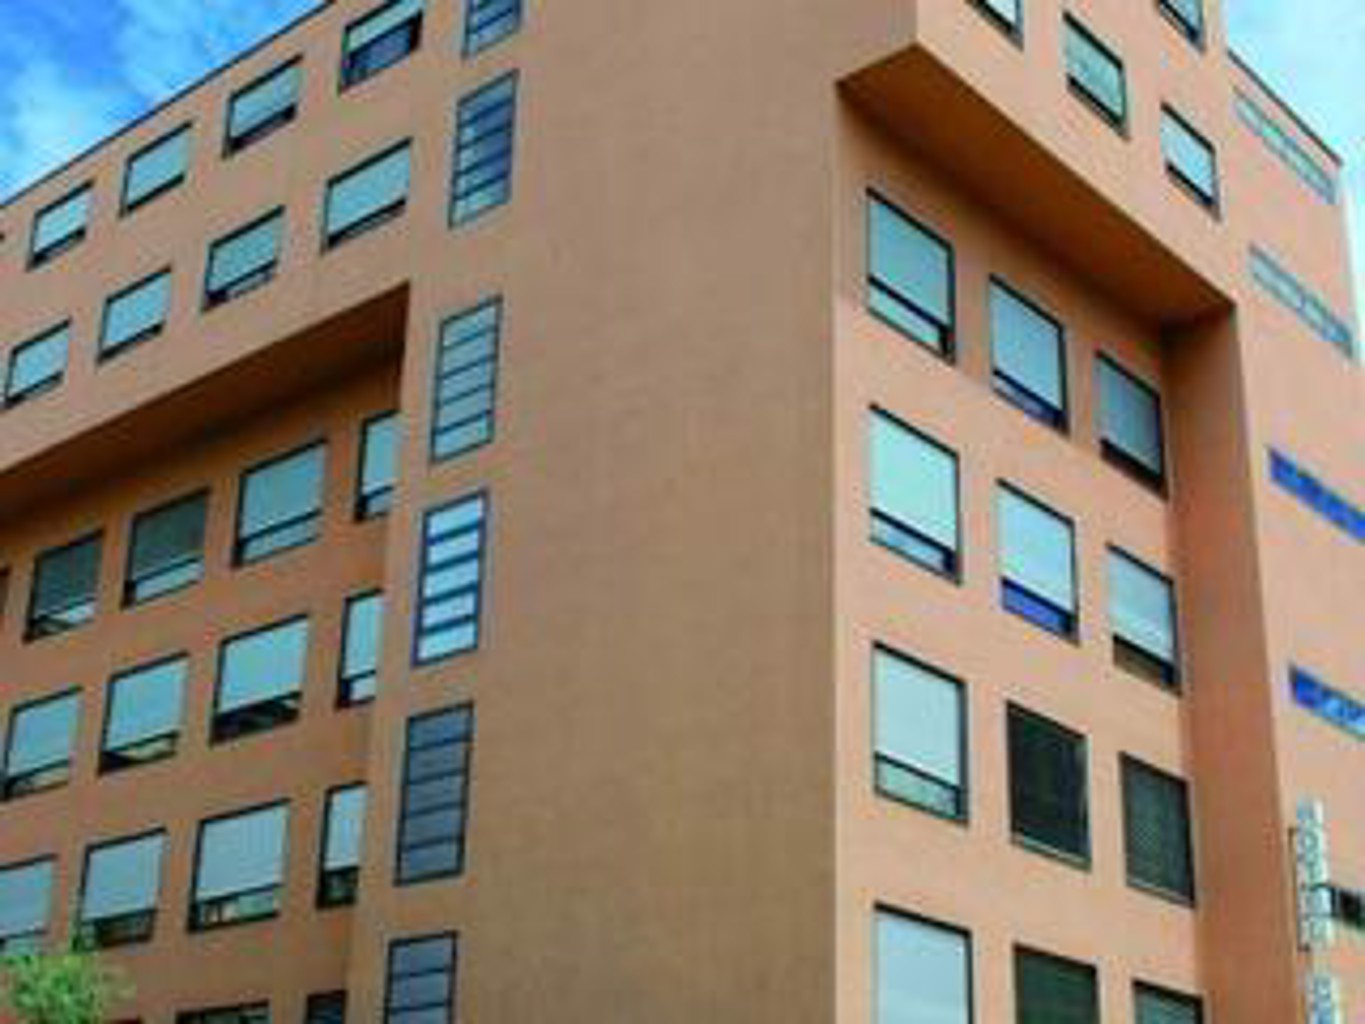 Gallery image of Hotel Ceresio